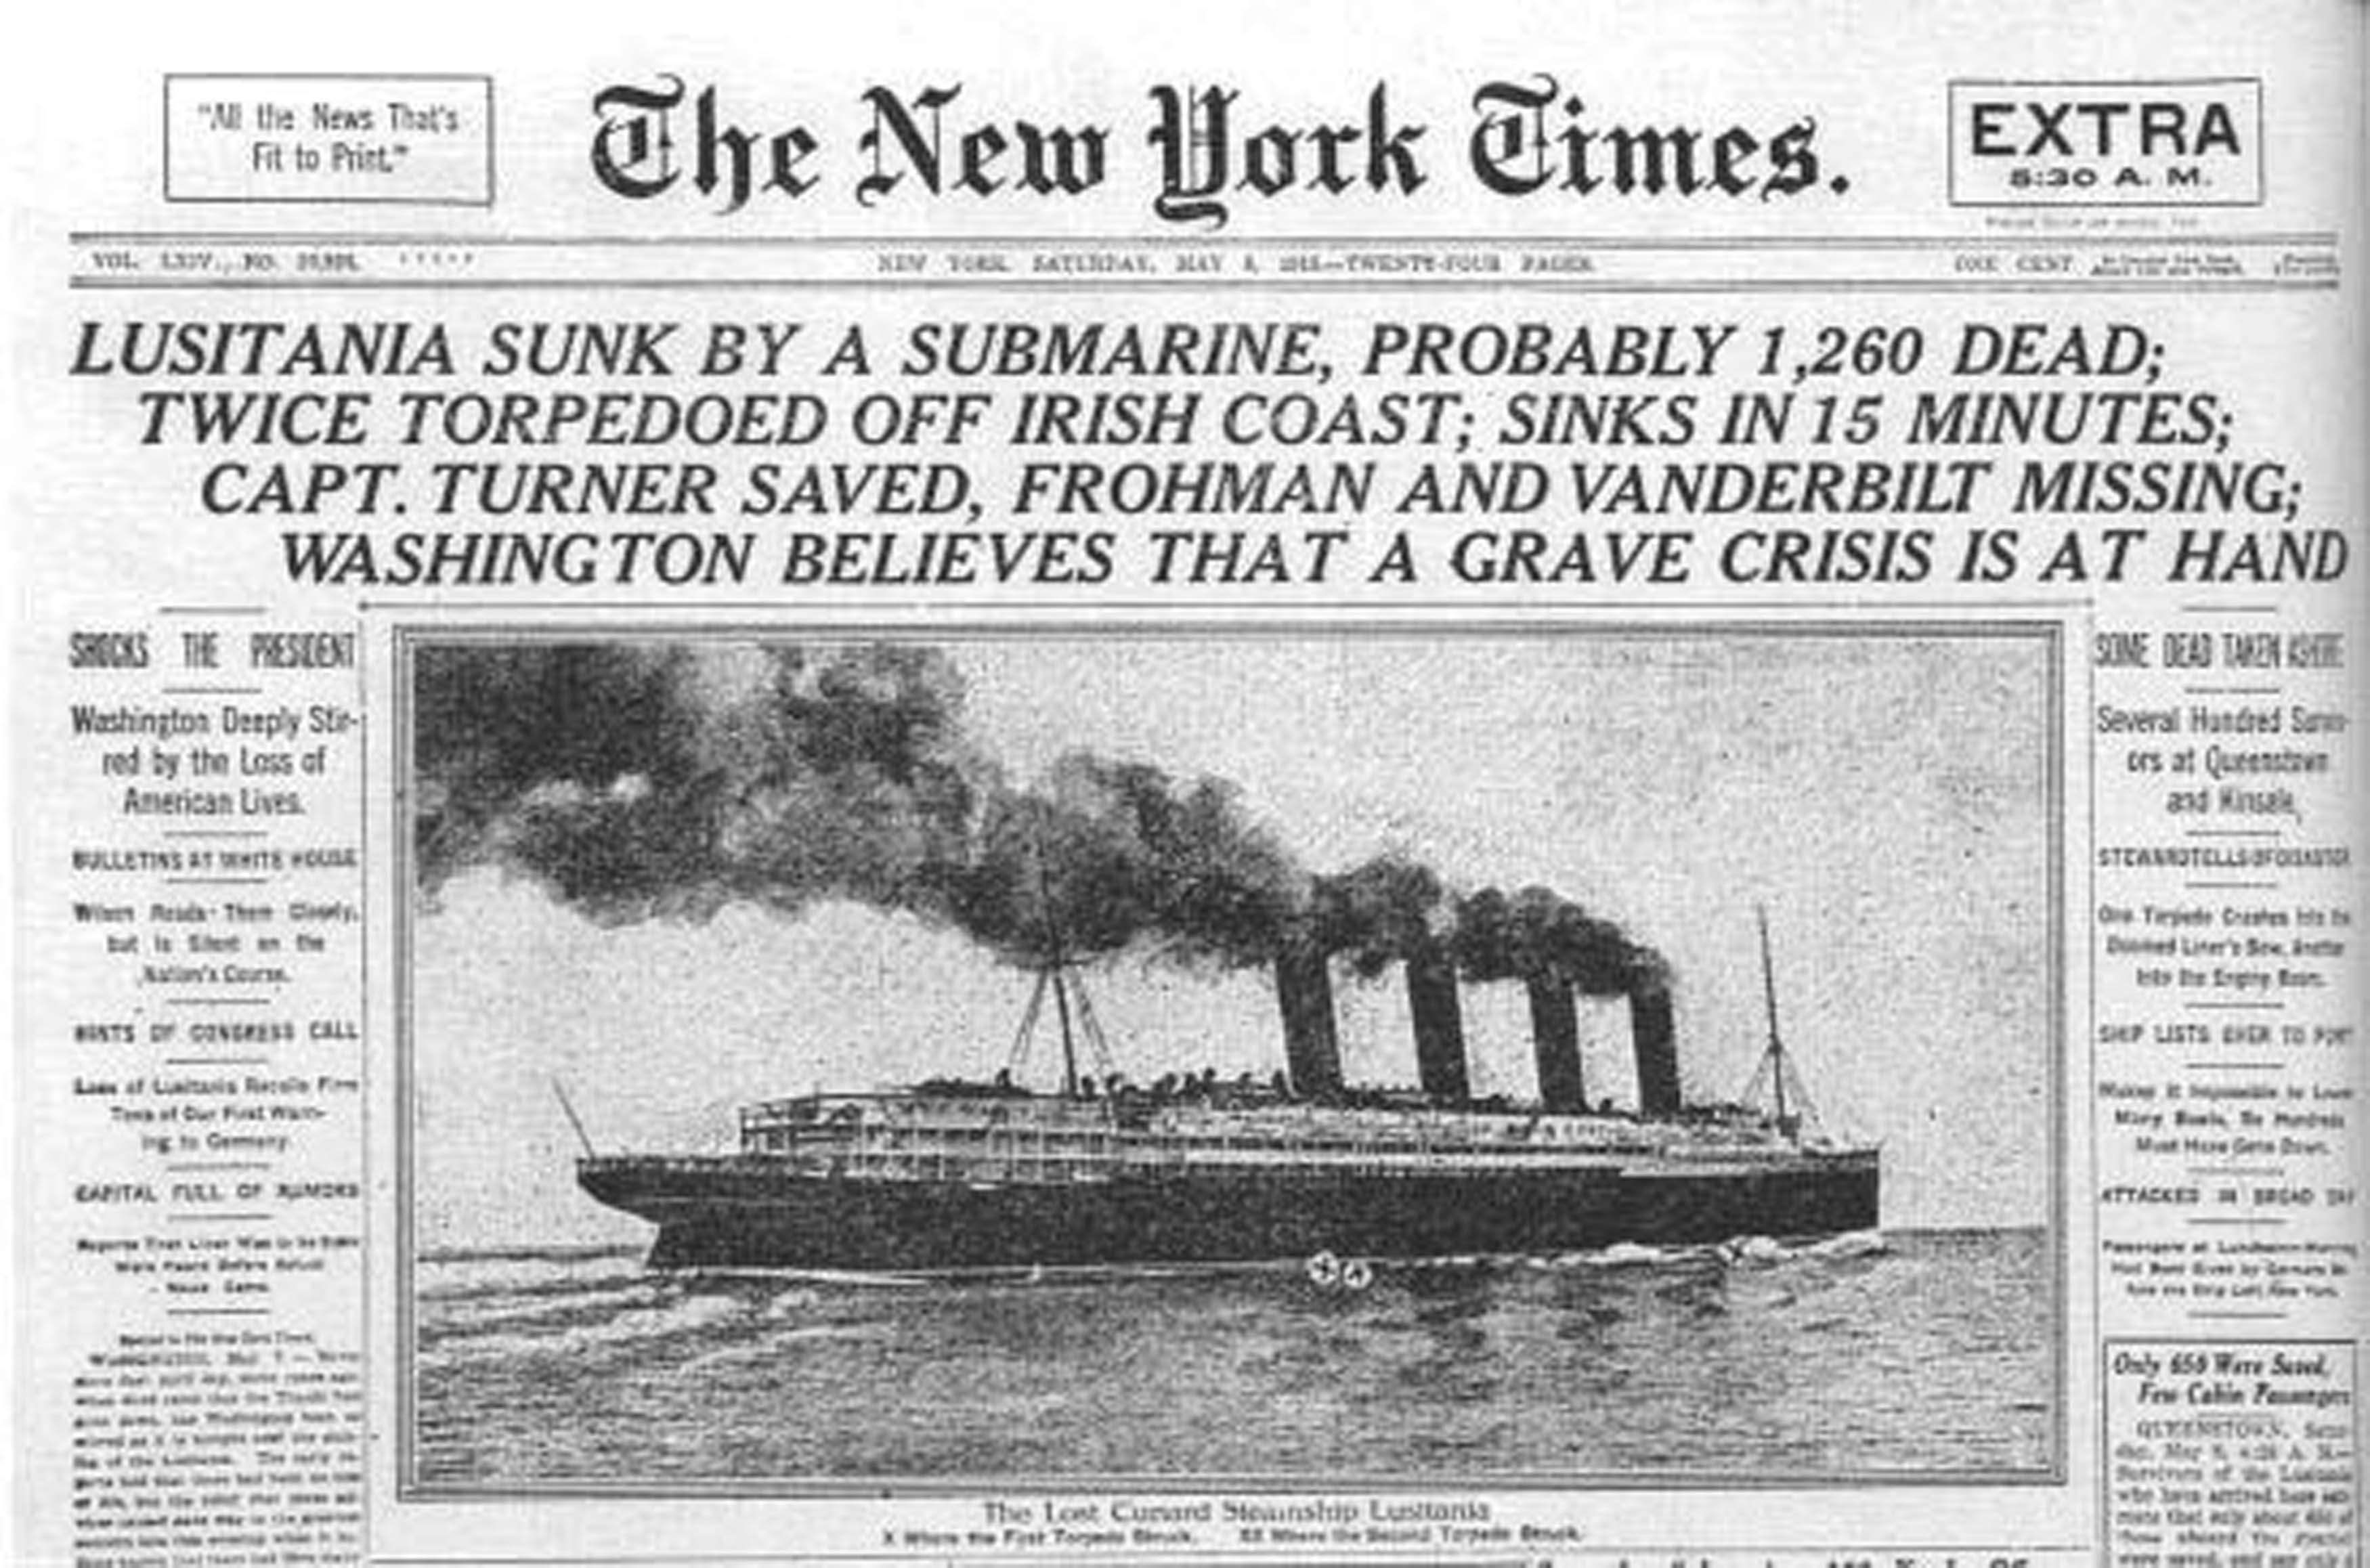 Rms lusitania wreck rms lusitania wreck quotes - Media Coverage